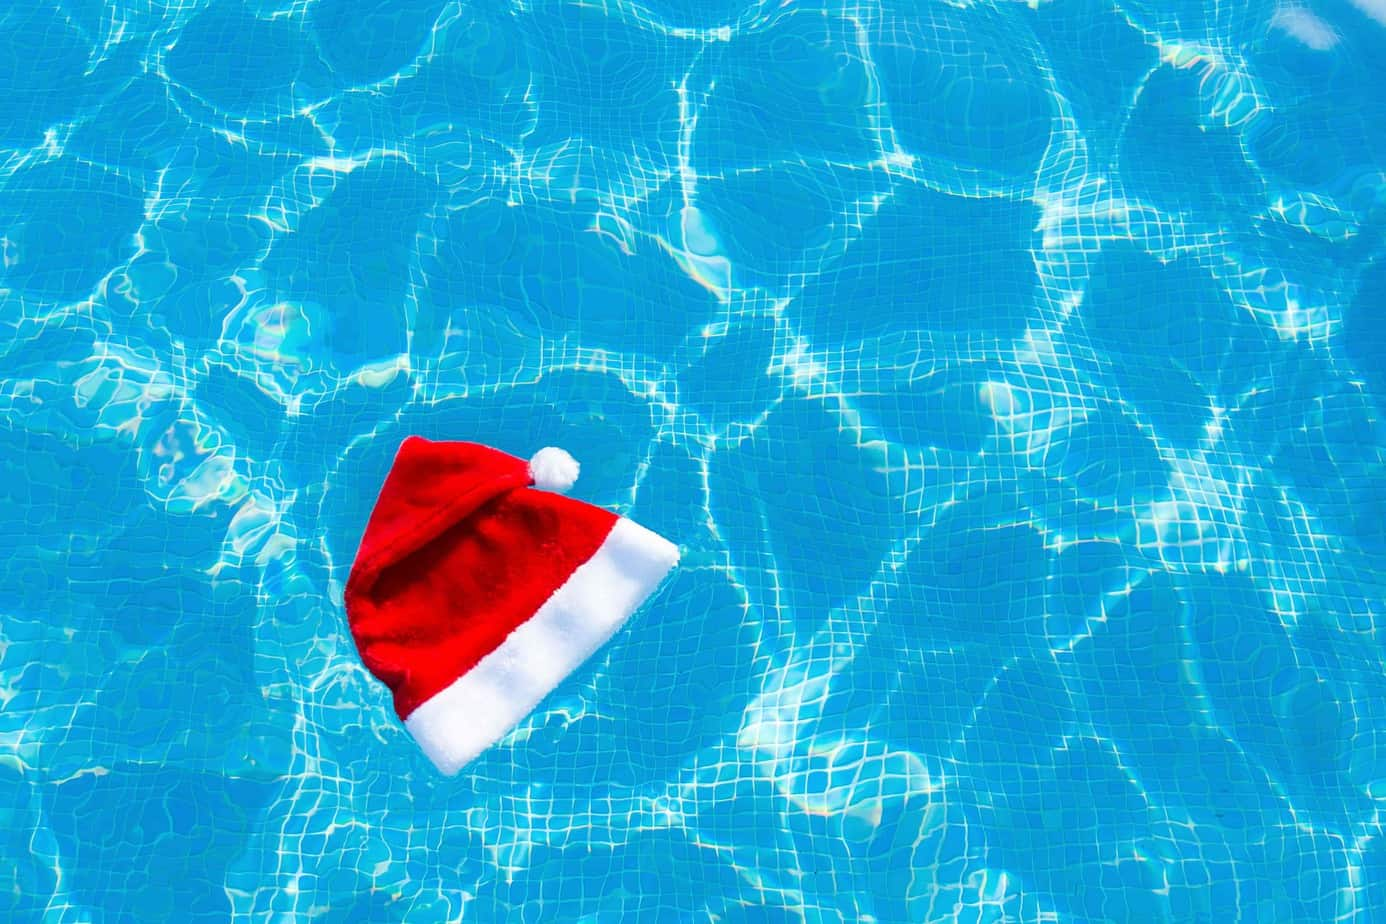 A Santa hat floating on water.